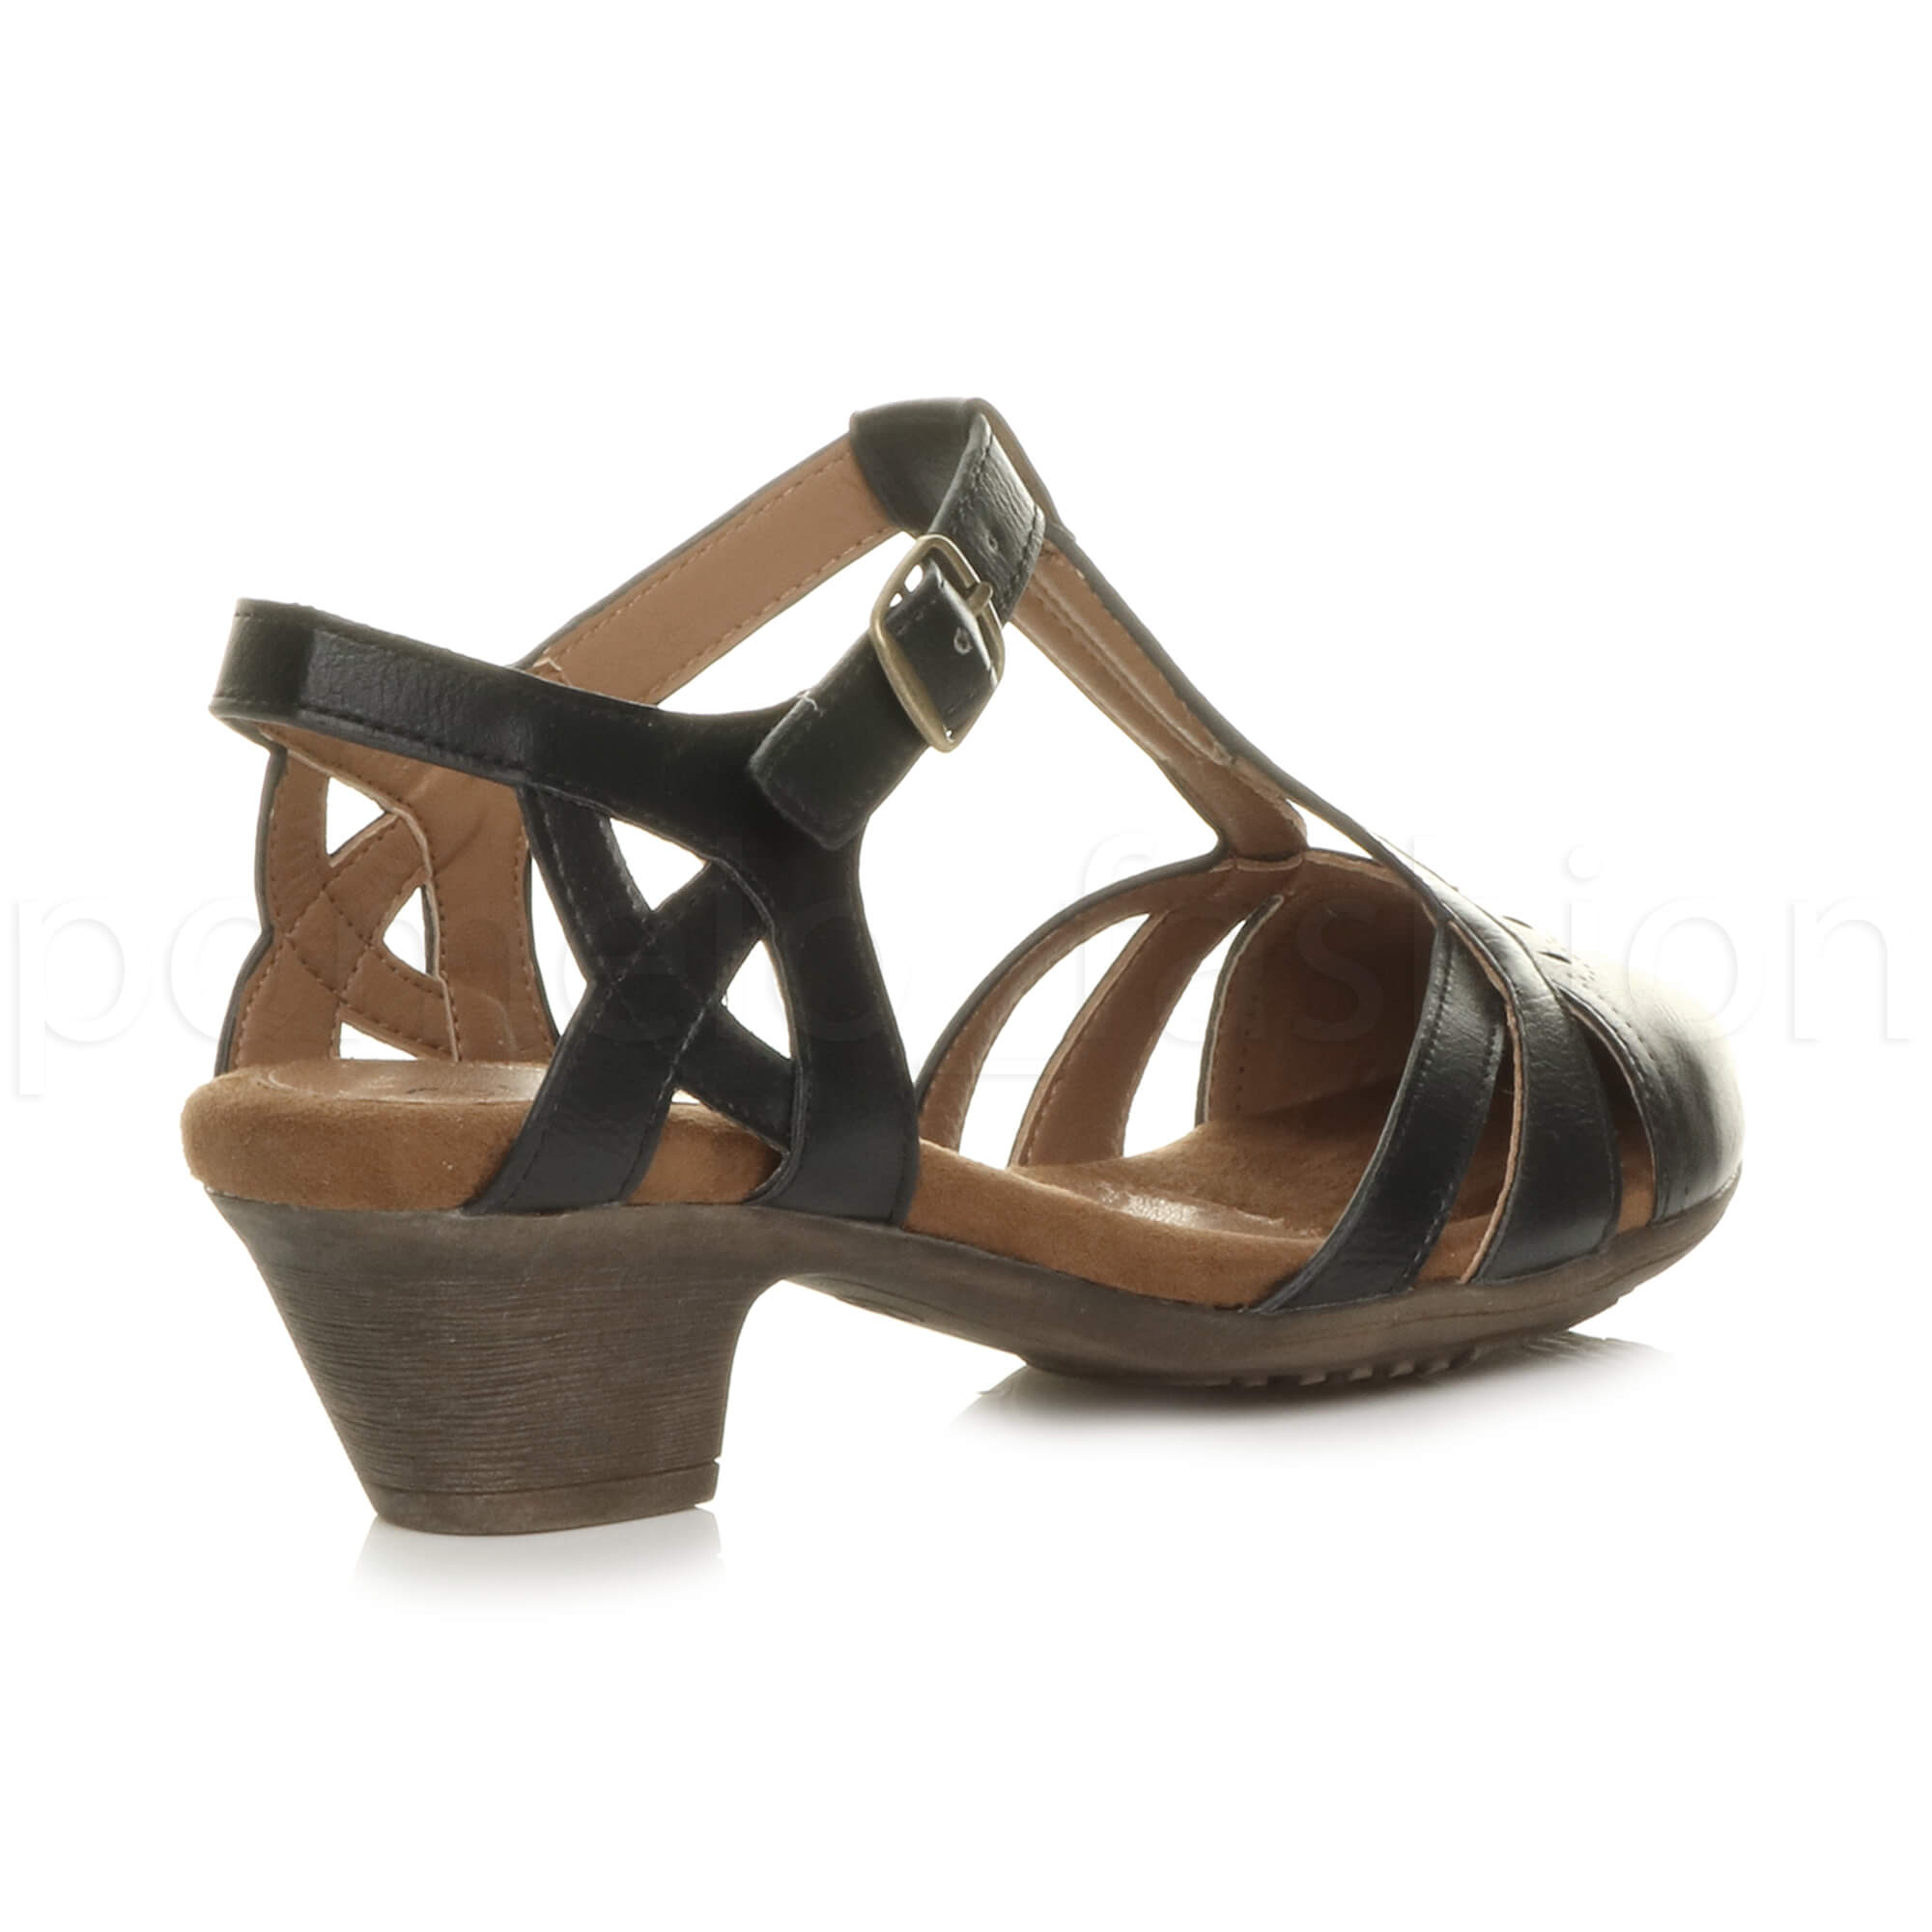 6baa56437f1ab Details about WOMENS LADIES LOW MID HEEL PADDED T-BAR VINTAGE STYLE 50s 60s  SHOES SANDALS SIZE